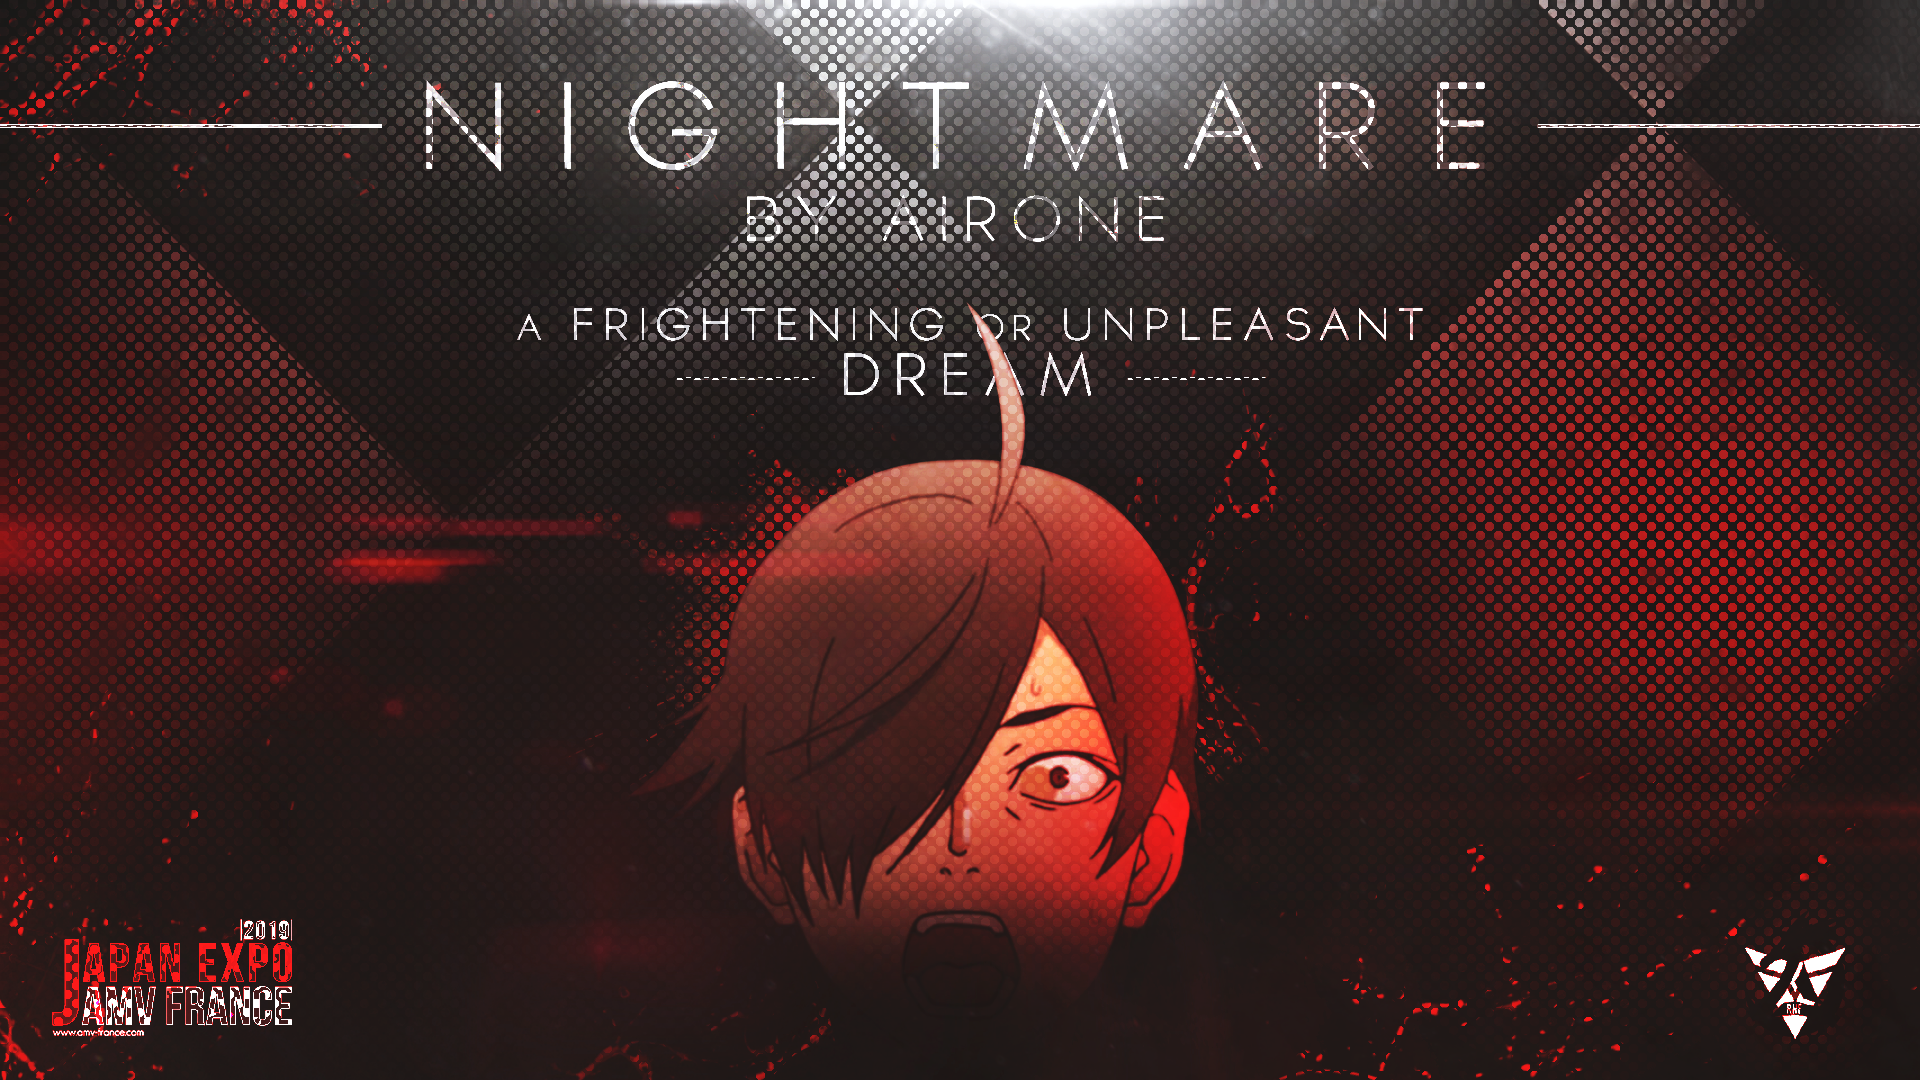 [Airone] Nightmare [4th Japan Expo 2019] 1562753258-miniature